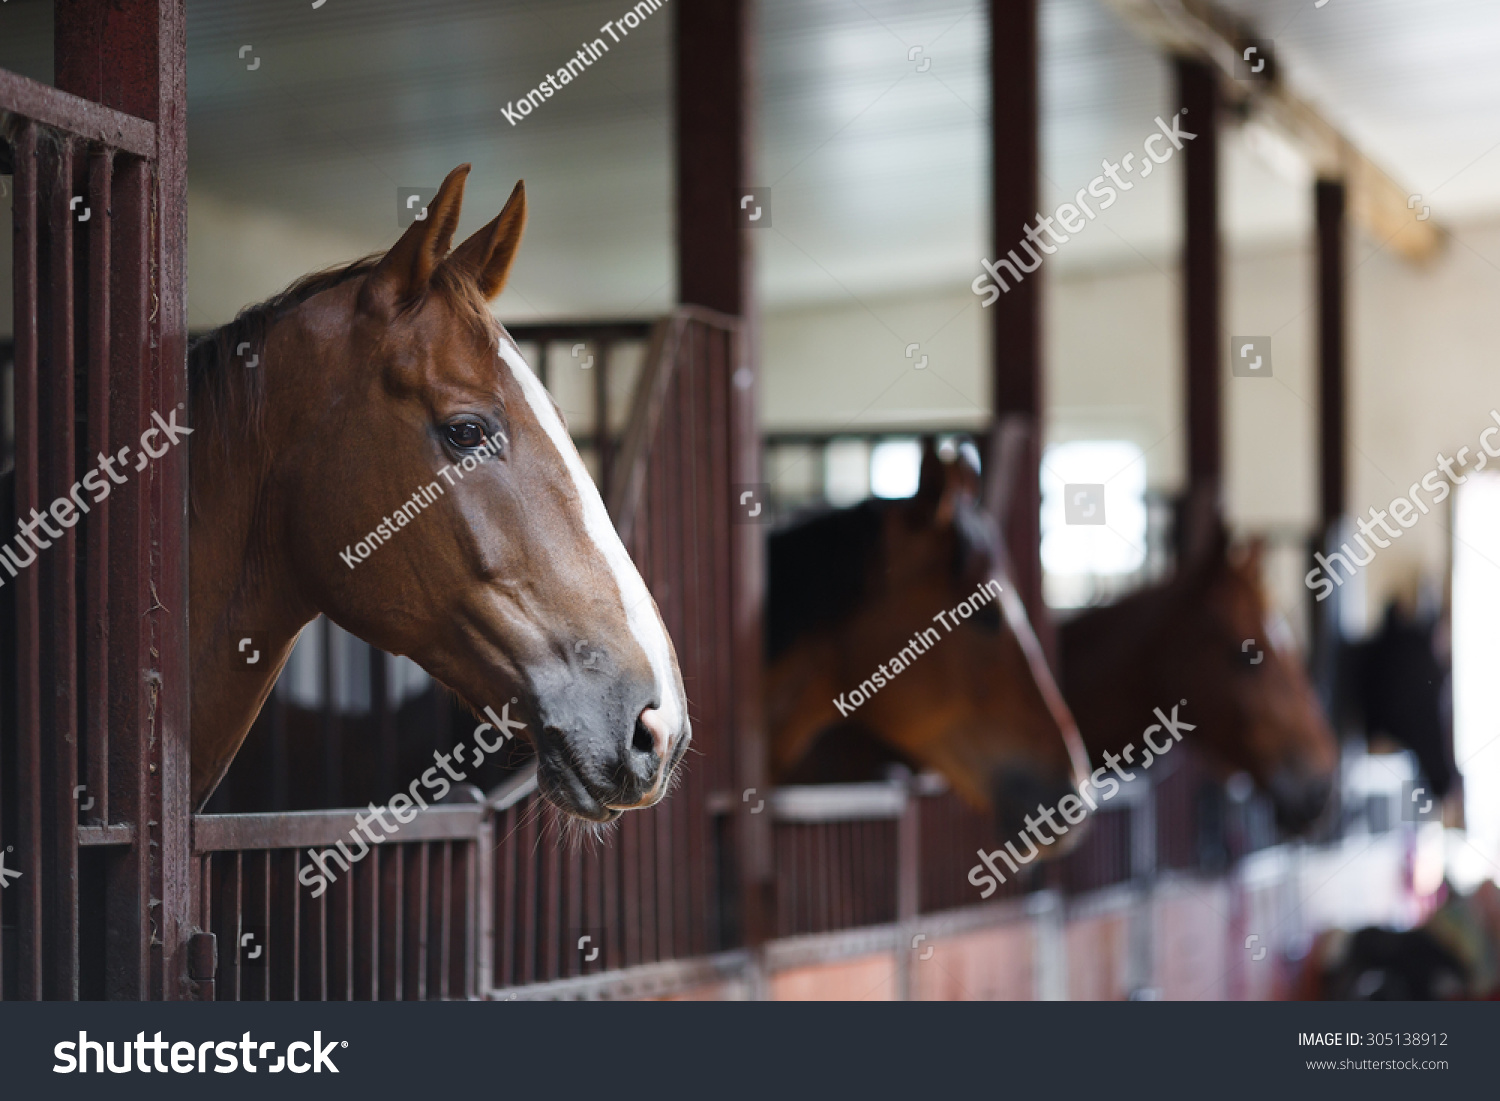 Head of horse looking over the stable doors on the background of other horses & Head Horse Looking Over Stable Doors Stock Photo 305138912 ... pezcame.com